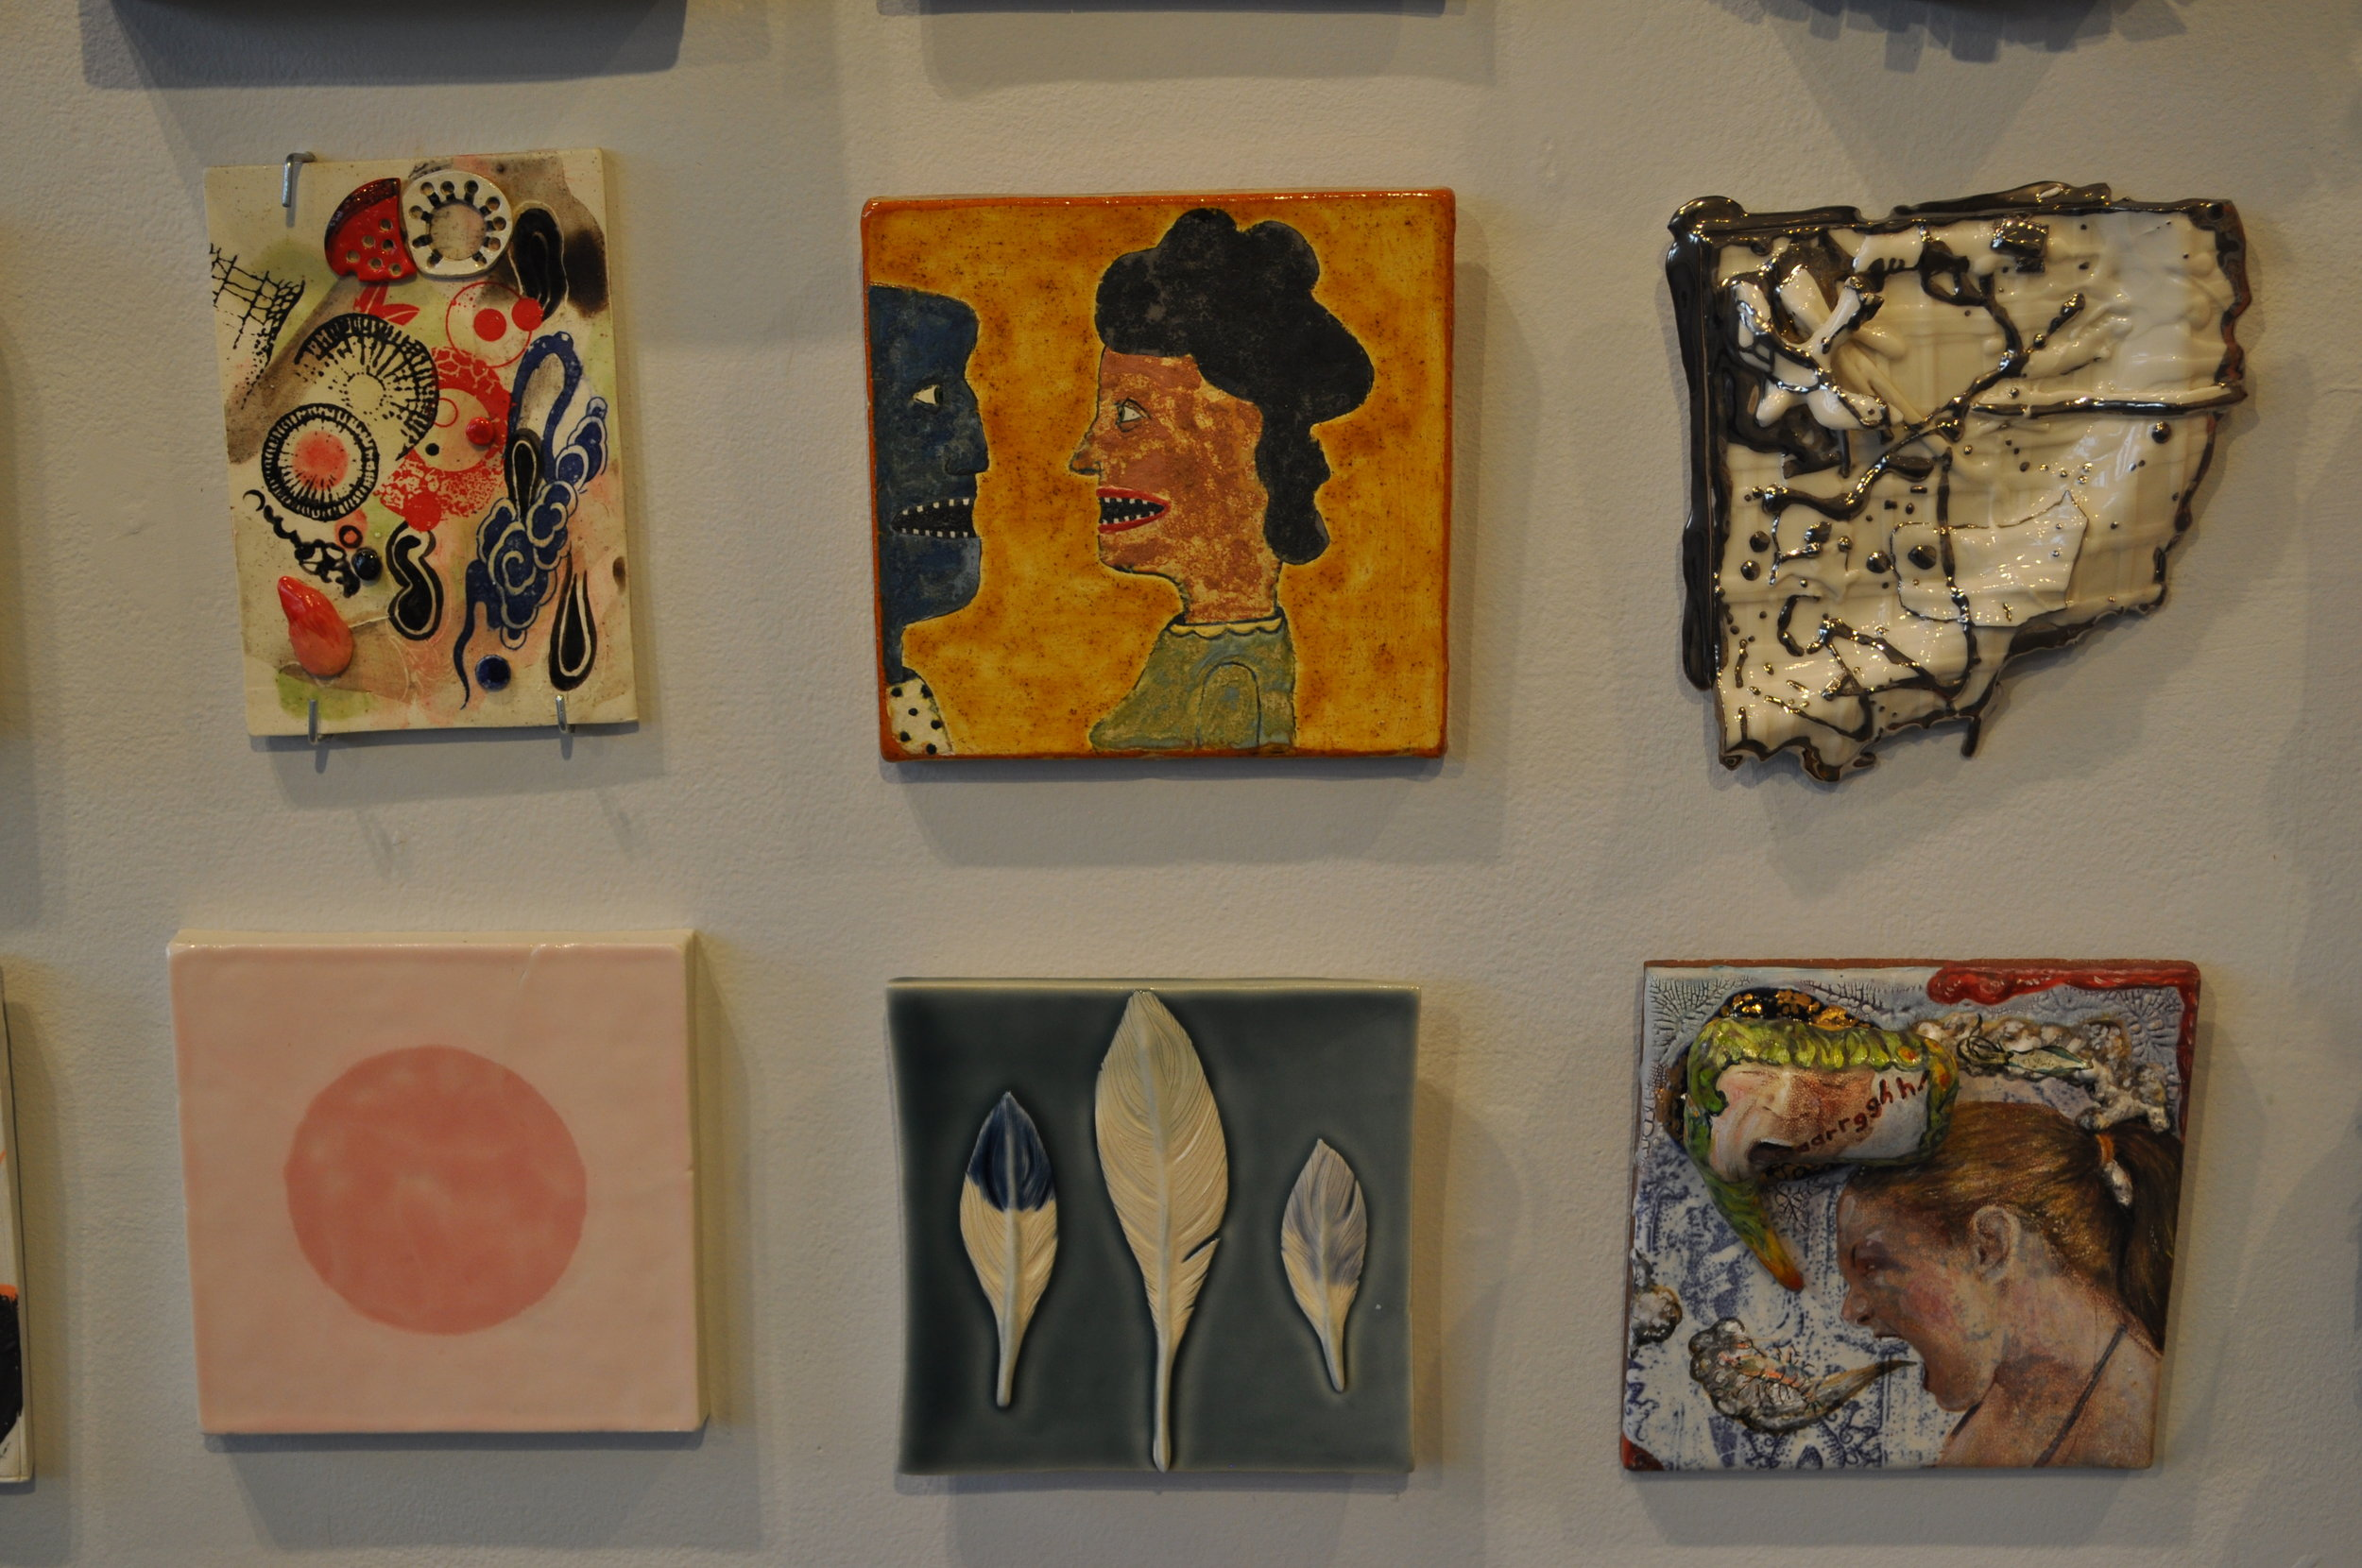 1 .Liz Biddle, Cloud Effect  $80  2. Wesley Anderegg, Tile #1  $200  3. Heather Mae Erickson, Tile: From perfect imperfection collection: Bird   series  $150  4. Ron Geibel,  Pink on pink 2  $150  5.  Kelly O'Sullivan, Feather tile #2 $90  6.  Matthew Nolen  Agressy/Messy  SOLD